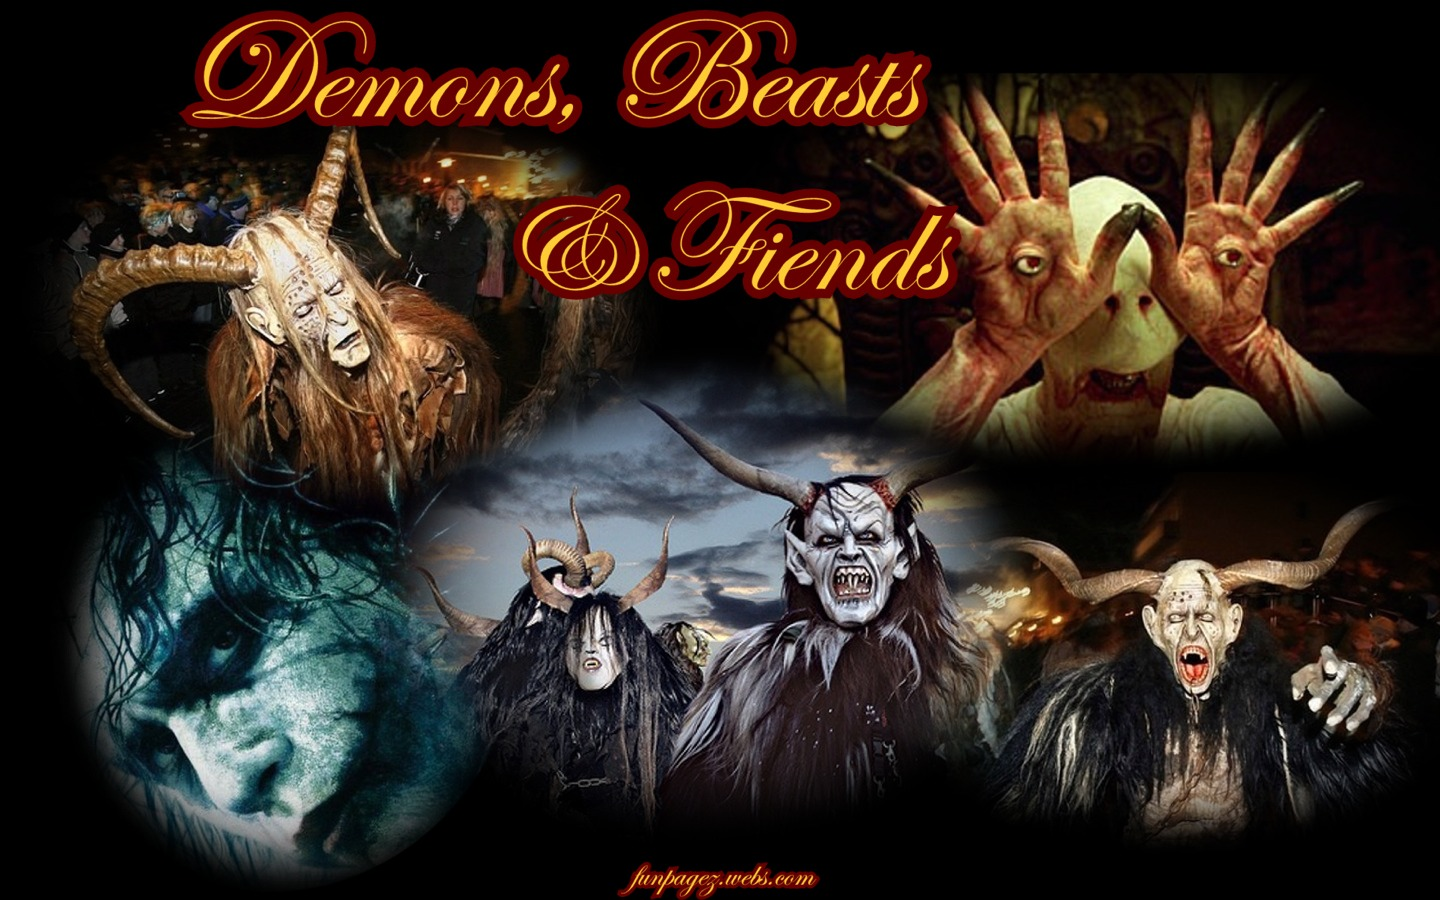 Demons Beasts Monsters 1440 x 900 ResolutionRight click to set as 1440x900